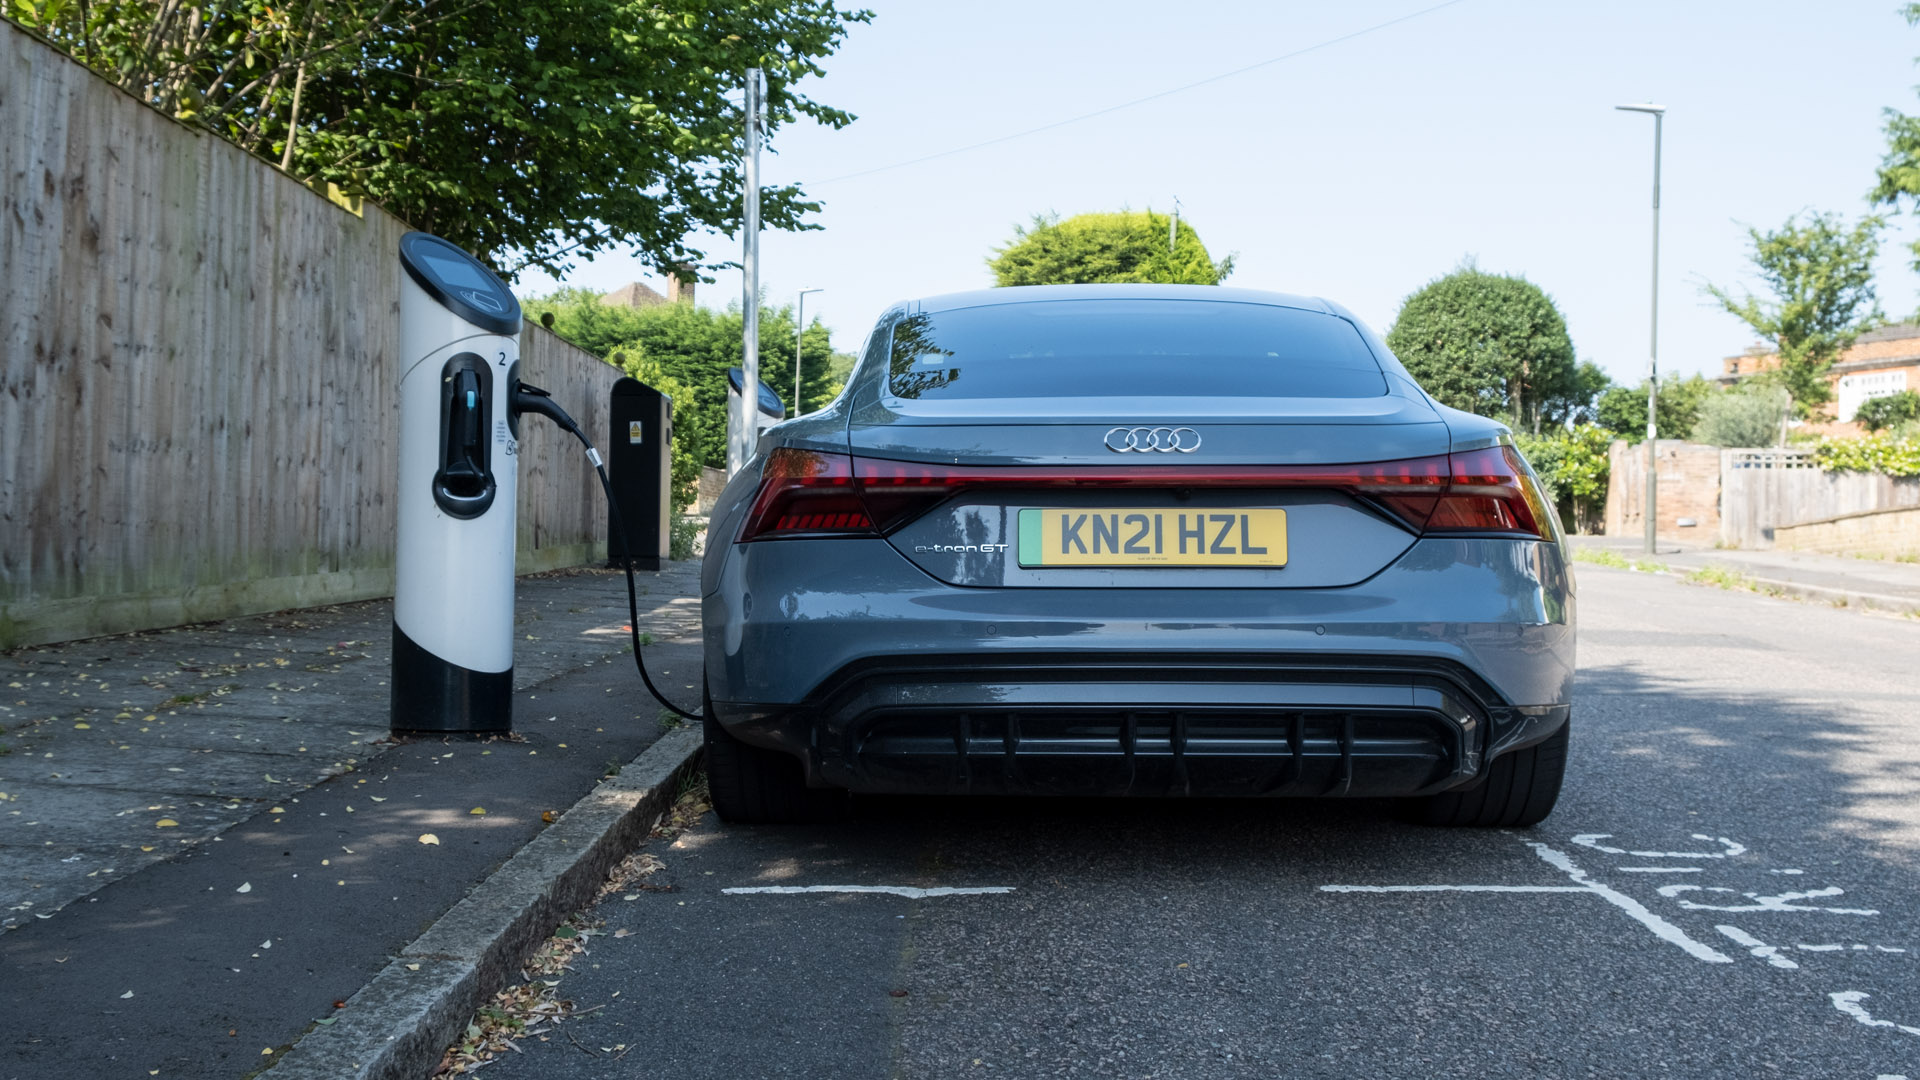 Audi e-tron GT charge point